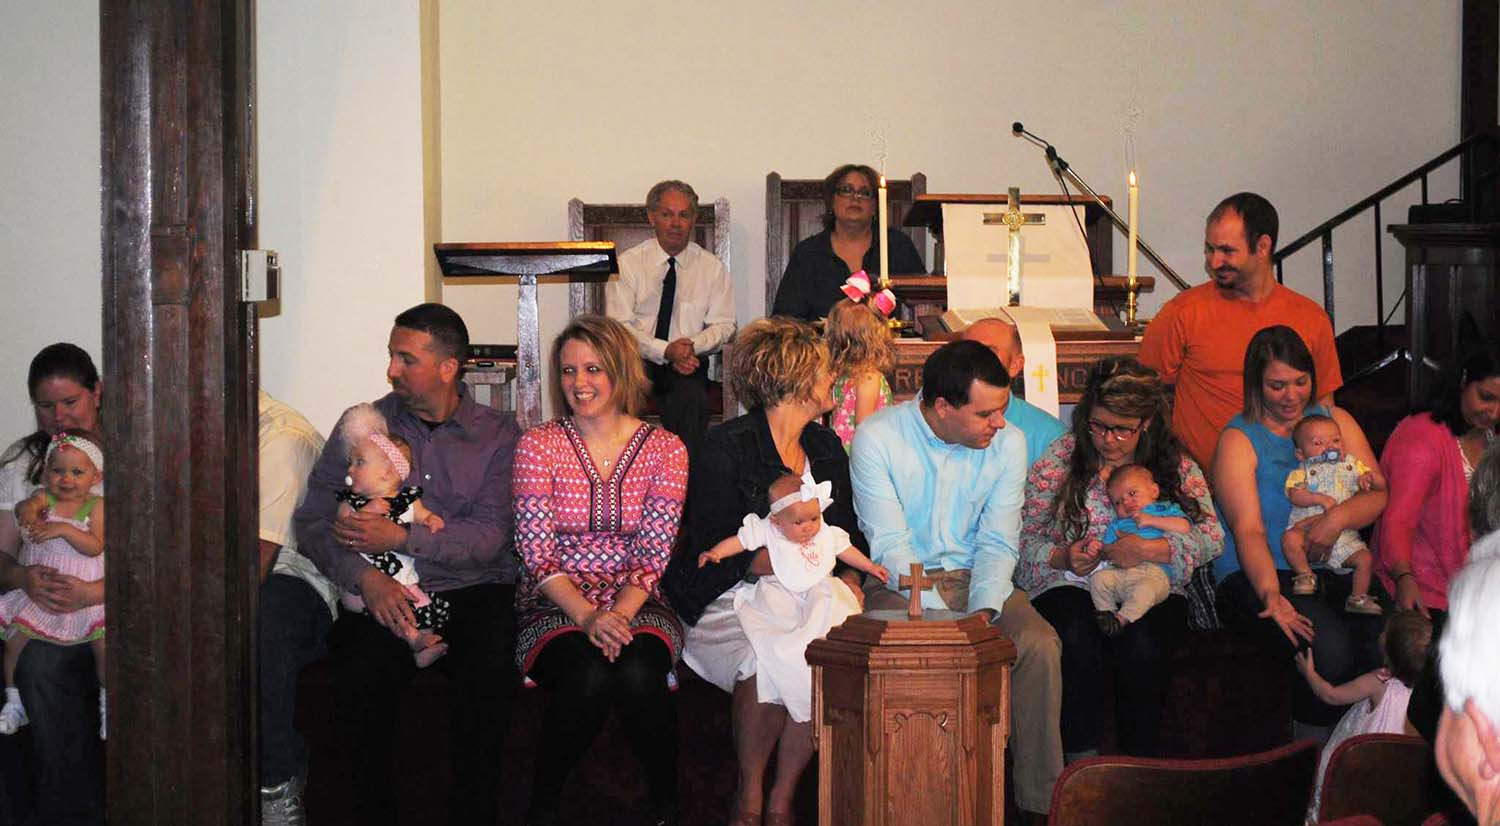 Baby Bring Your Family to Church Sunday - 1 May 2016